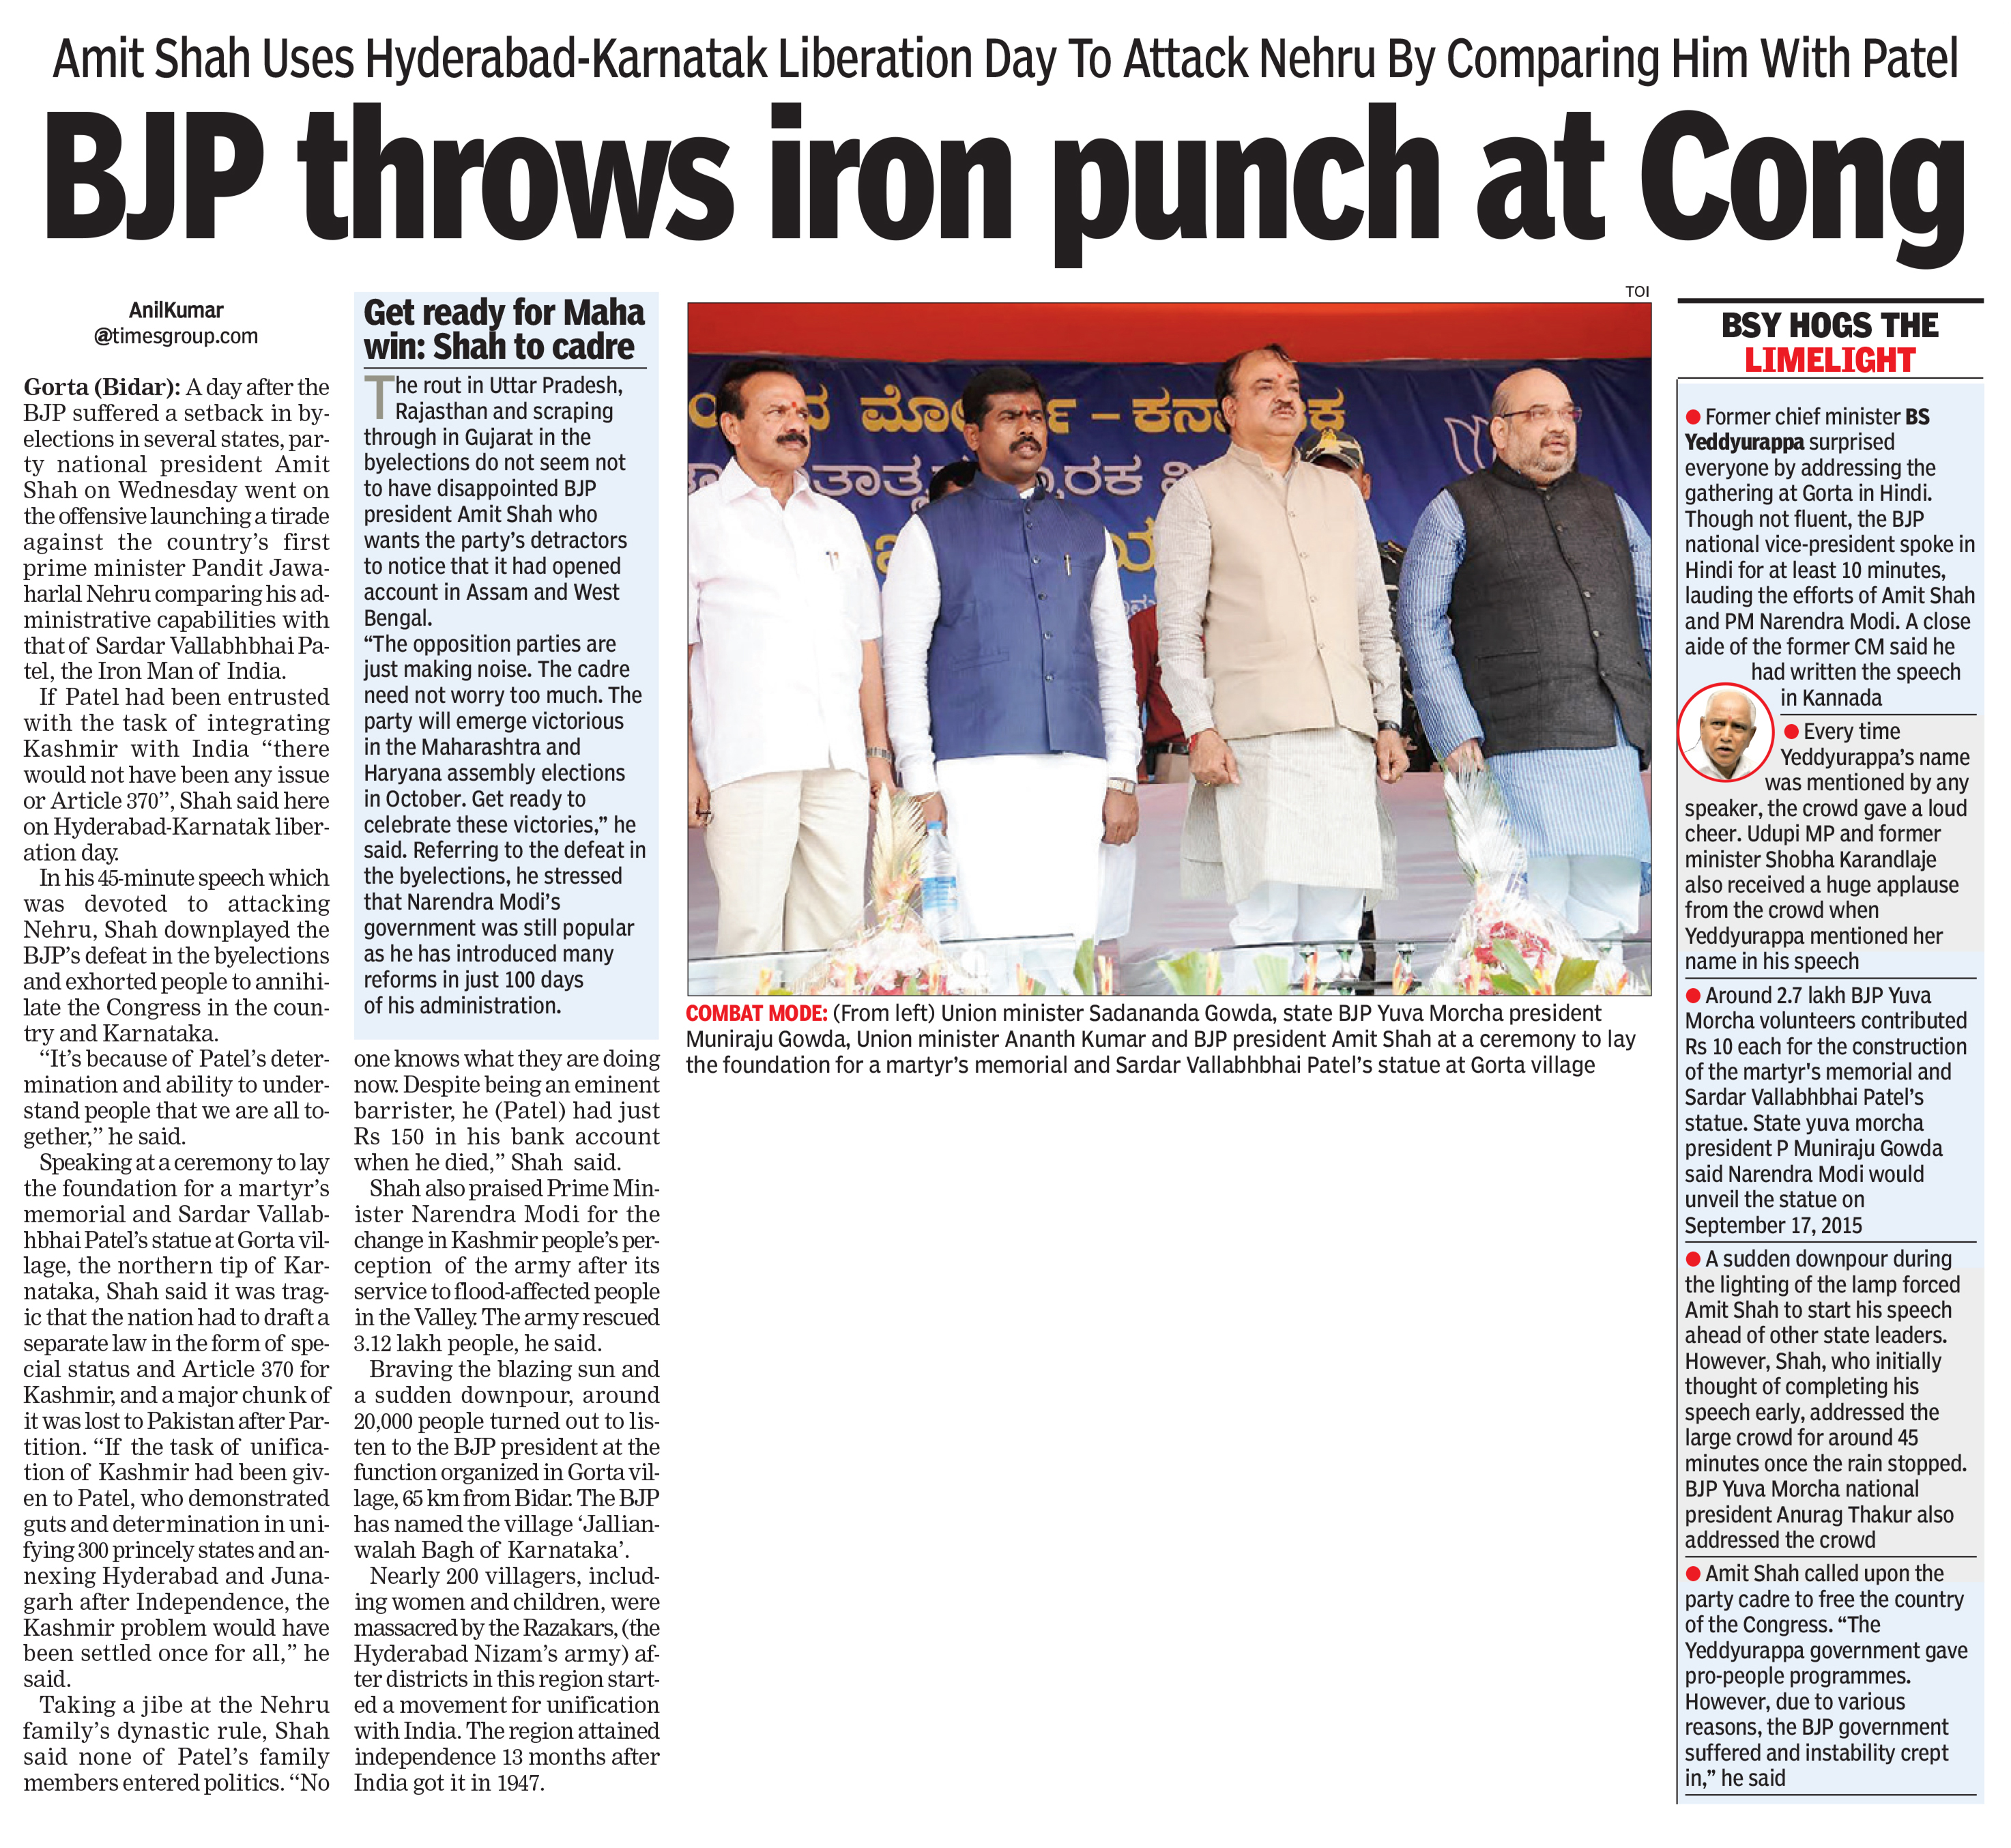 BJP throws iron Punch at Cong